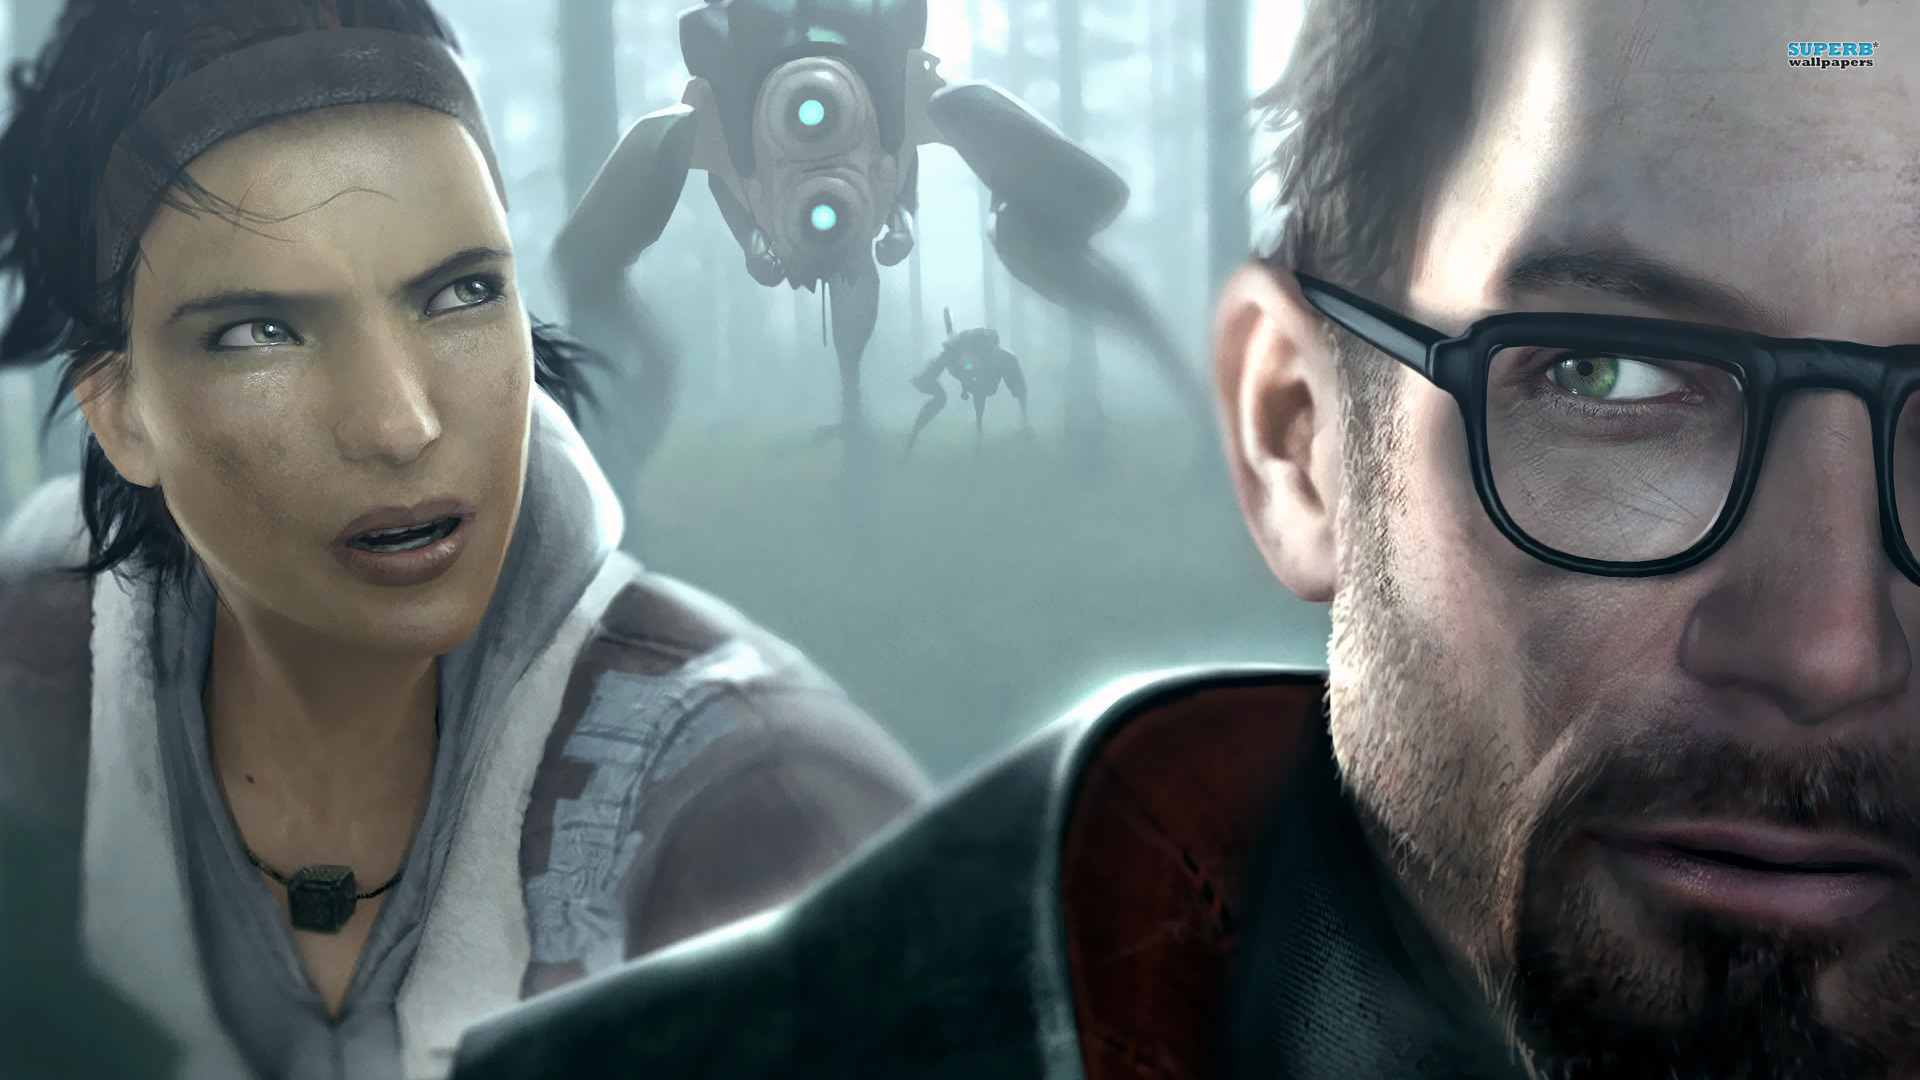 half-life-2-half-life-3-will-not-be-a-single-player-game-with-freeman